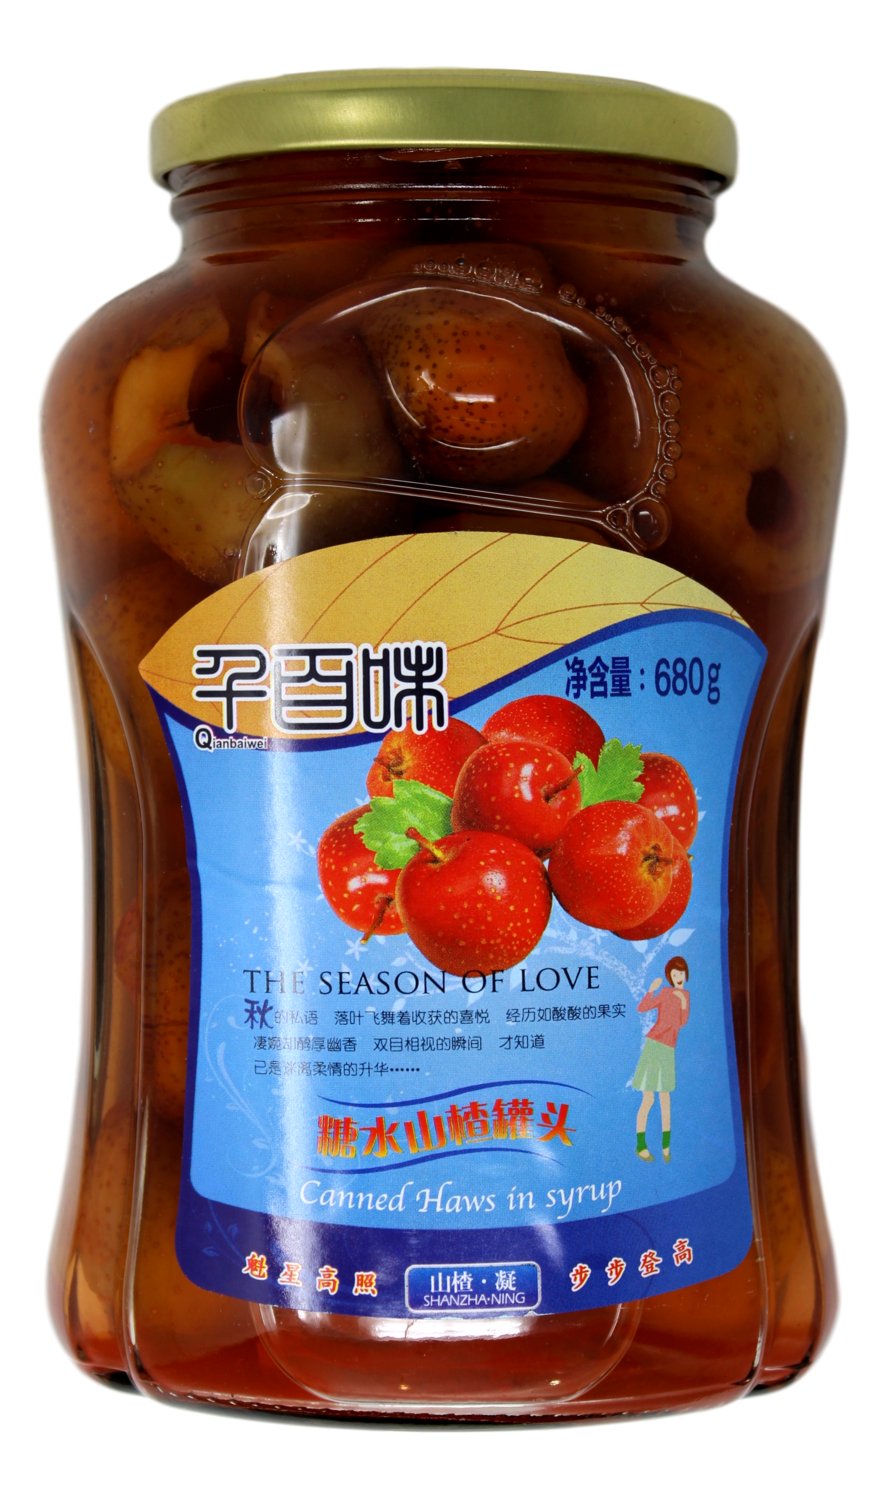 CANNED HAWS IN SYRUP 千百味糖水山楂罐头(680g)